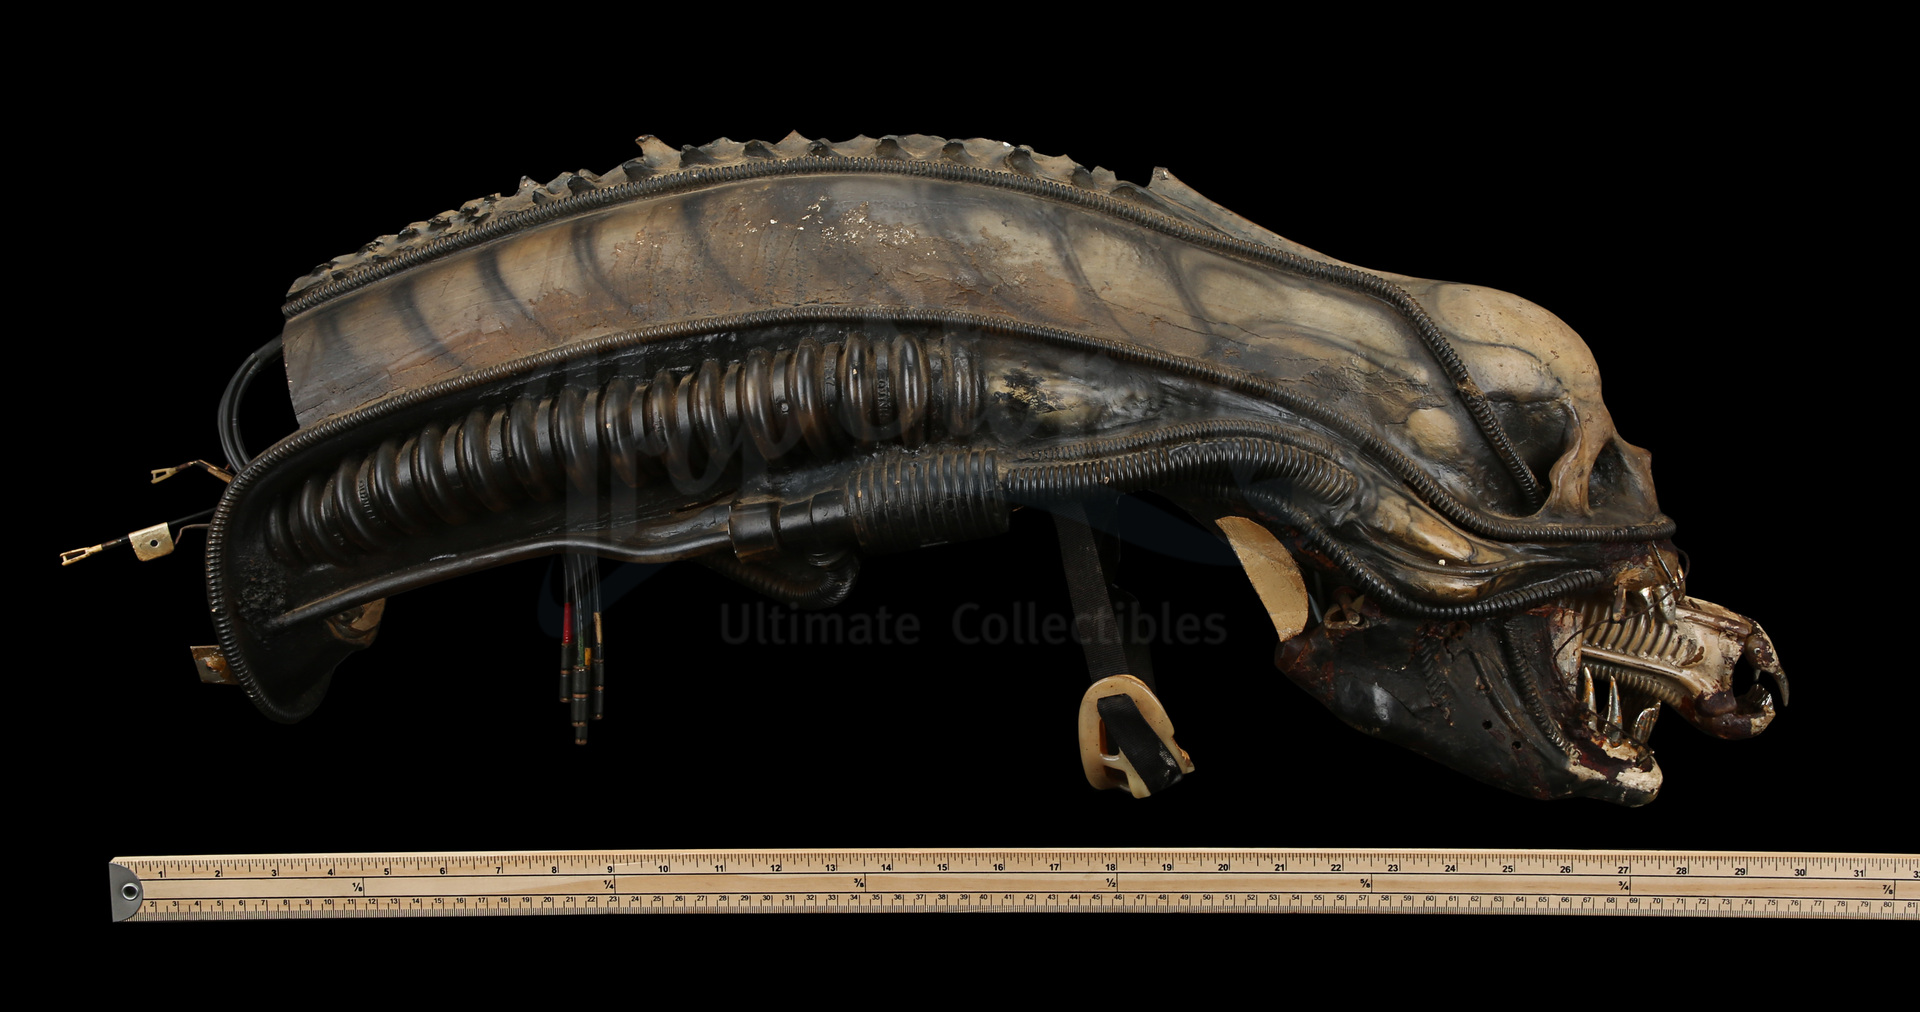 ALIEN (1979) - H.R. Giger-designed Special Effects Mechanical Alien Head - Image 31 of 34